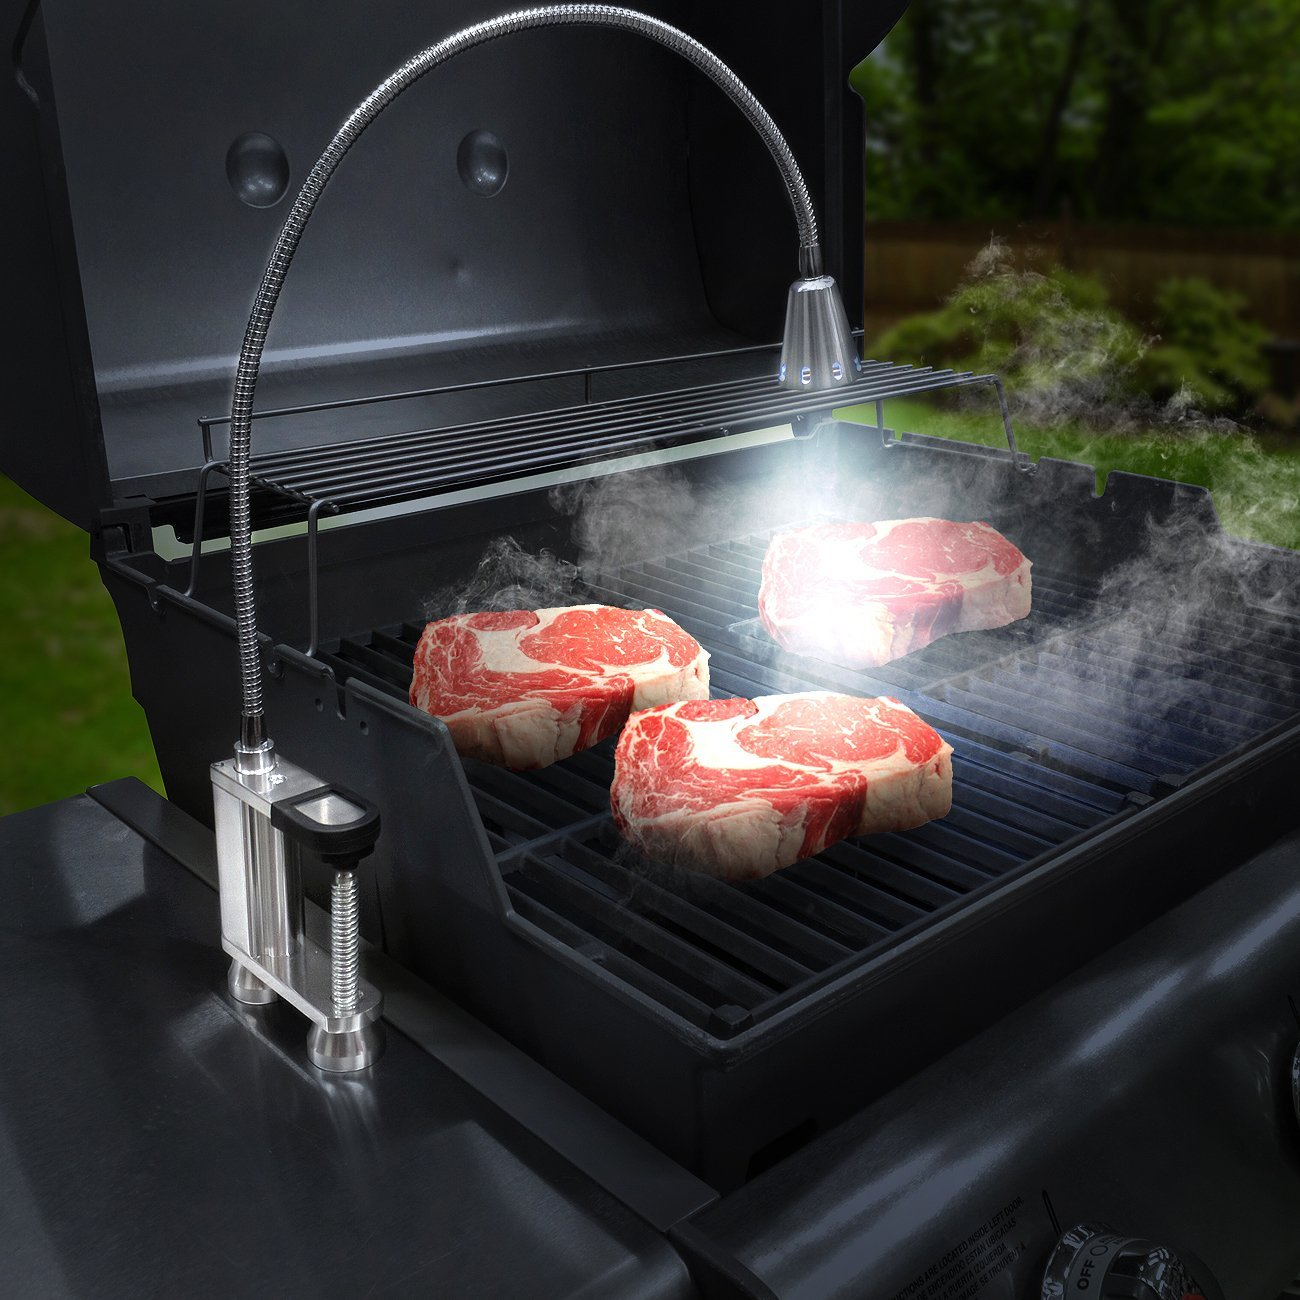 amazoncom led concepts bbq grill light 12 super bright led garden u0026 outdoor